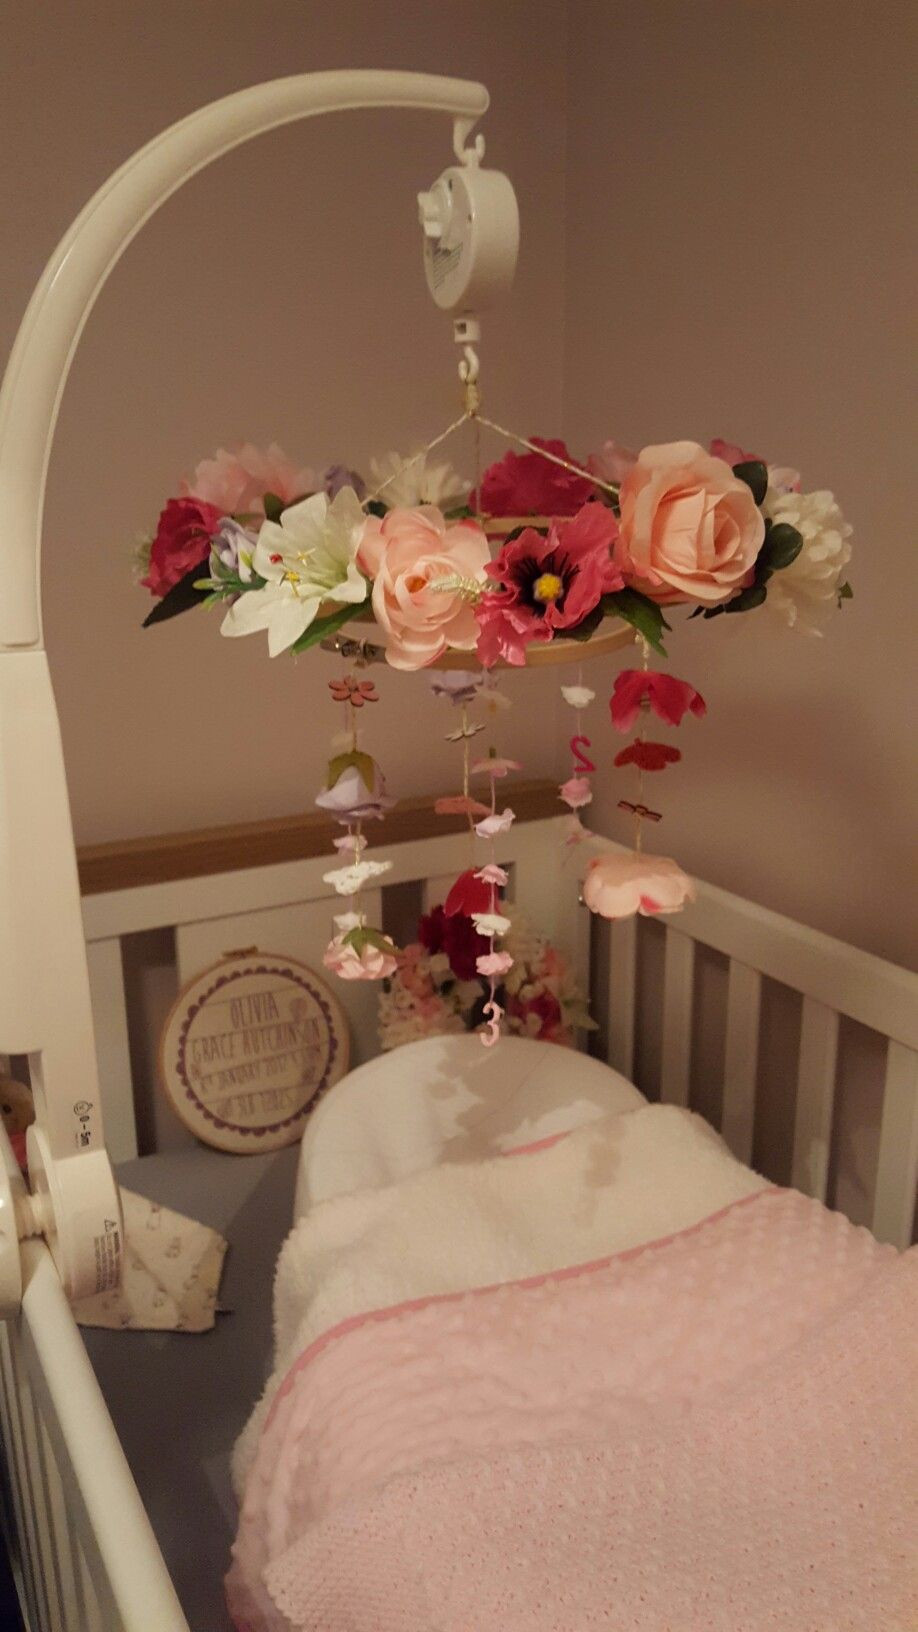 Best ideas about DIY Baby Rooms . Save or Pin DIY Woodland Nursery Mobile for baby girls room Now.